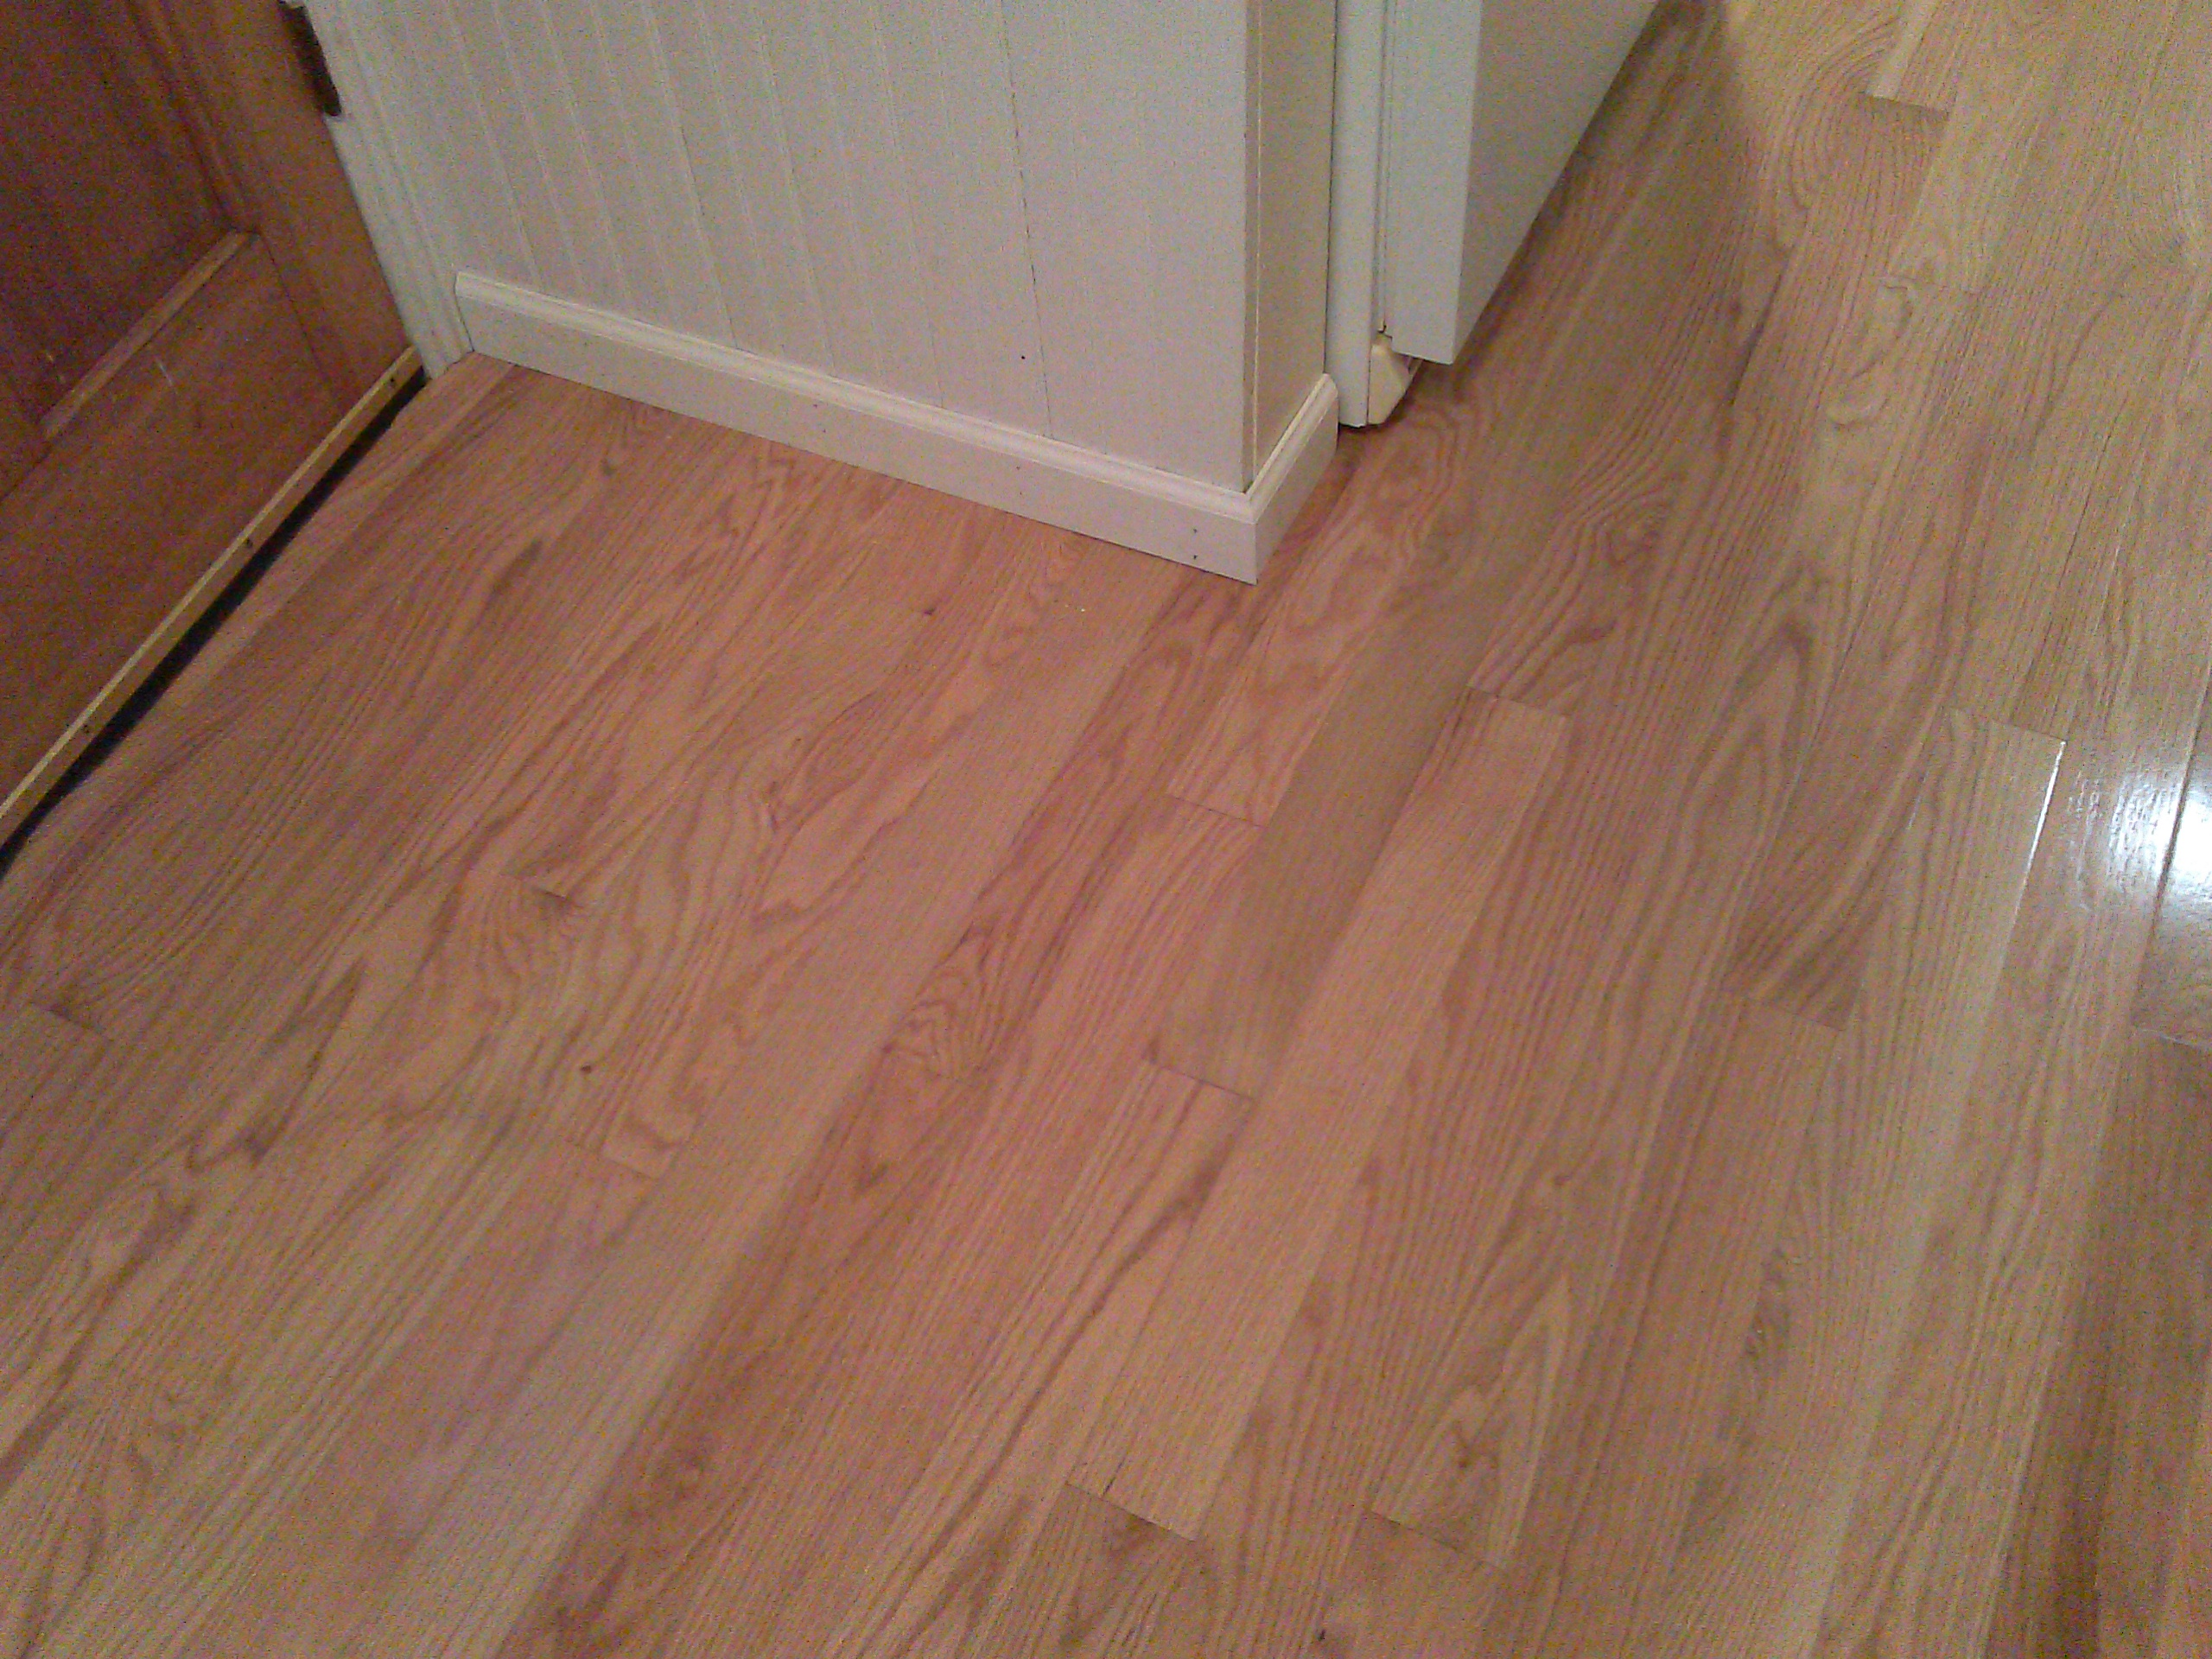 Pre-finished Solid Red Oak Hardwood Flooring